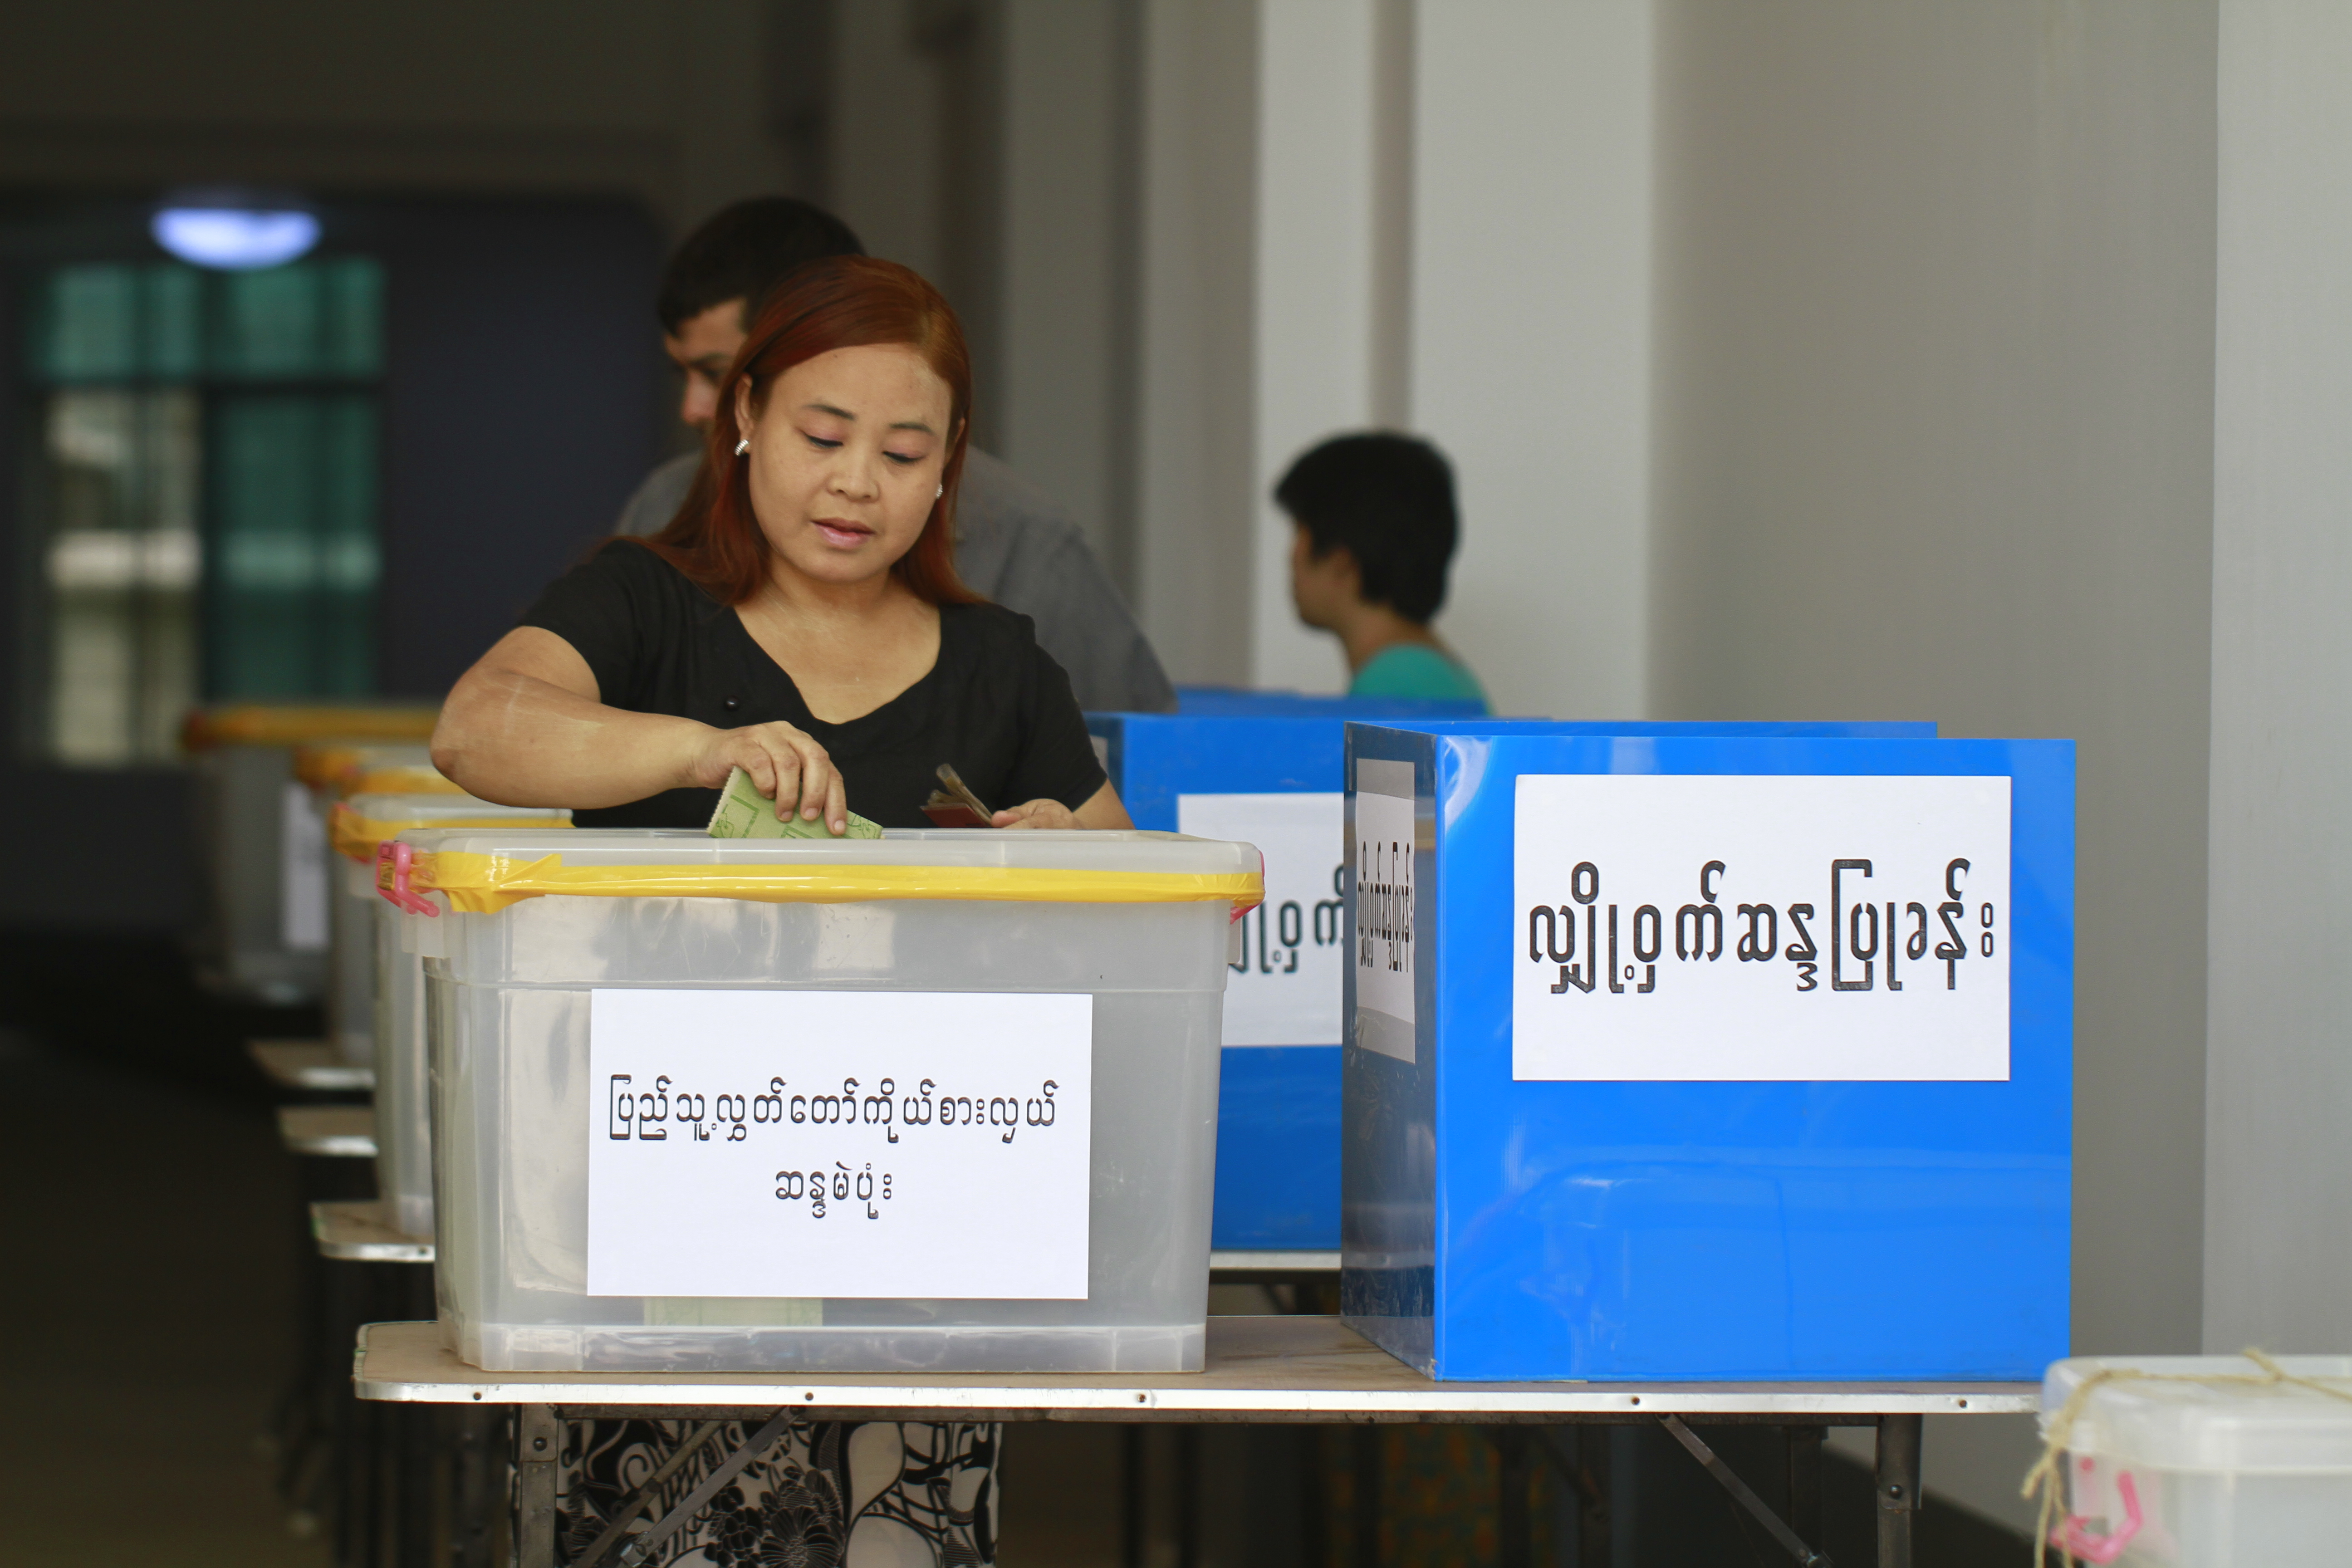 Image from https://en.wikipedia.org/wiki/Myanma_by-elections,_2012